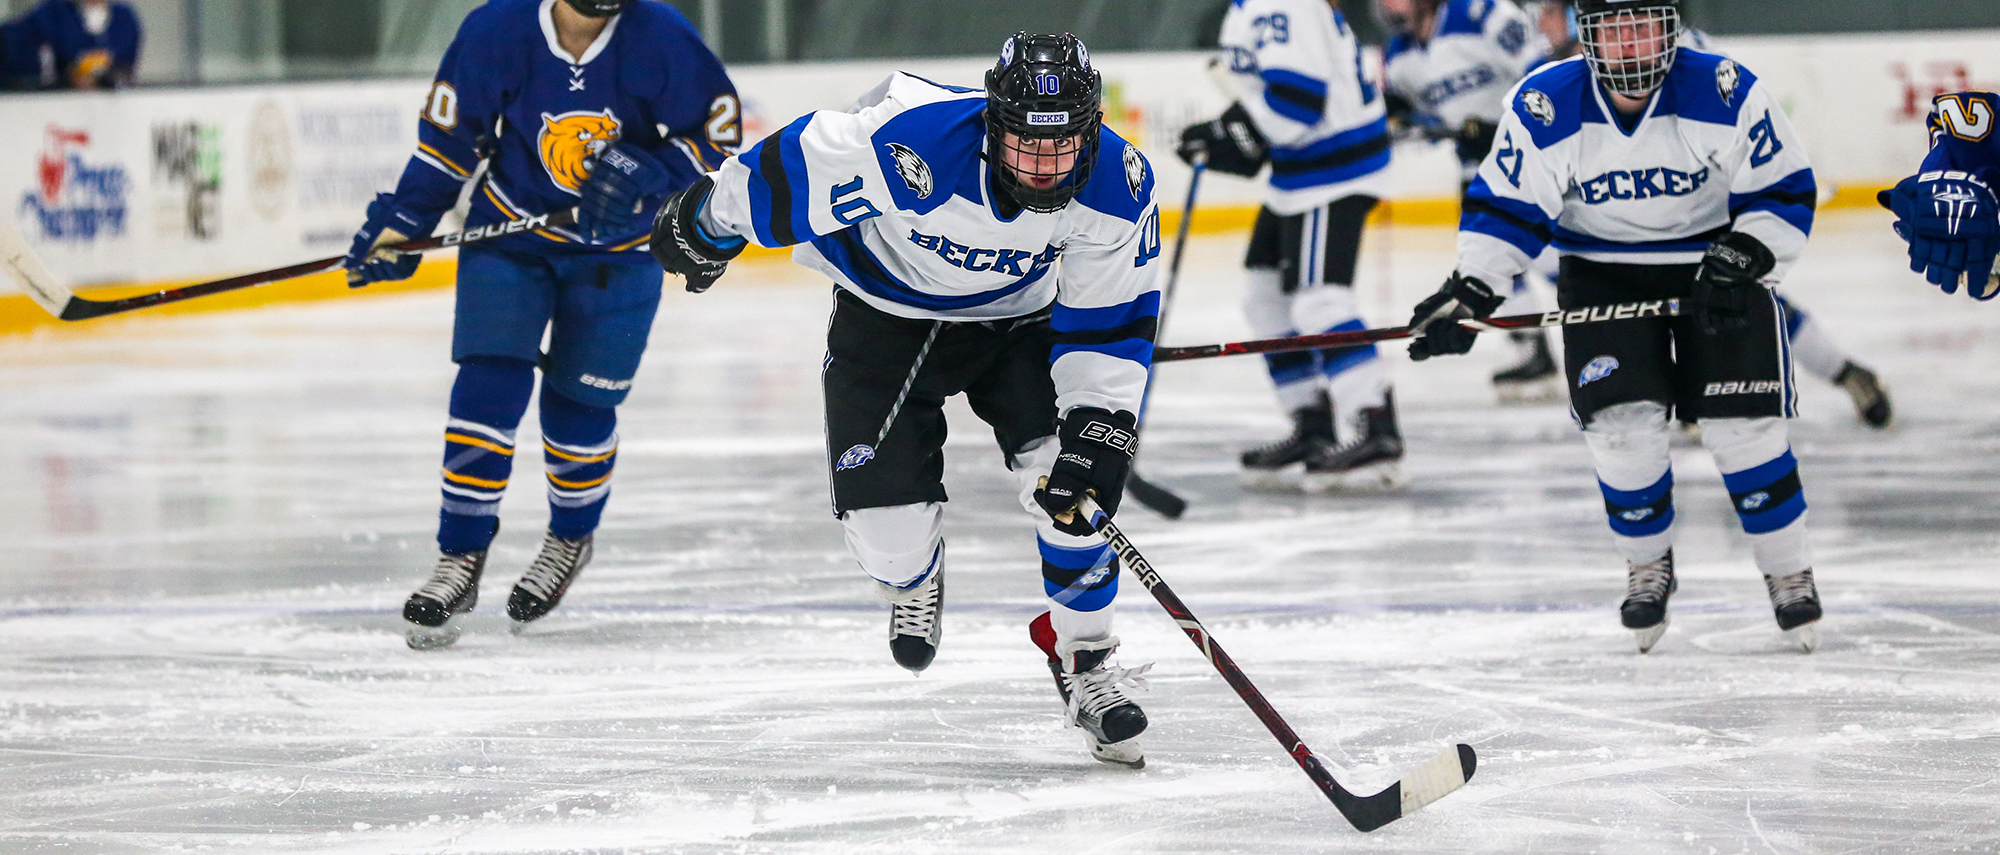 Bailey Coons, women's ice hockey vs. Johnson & Wales